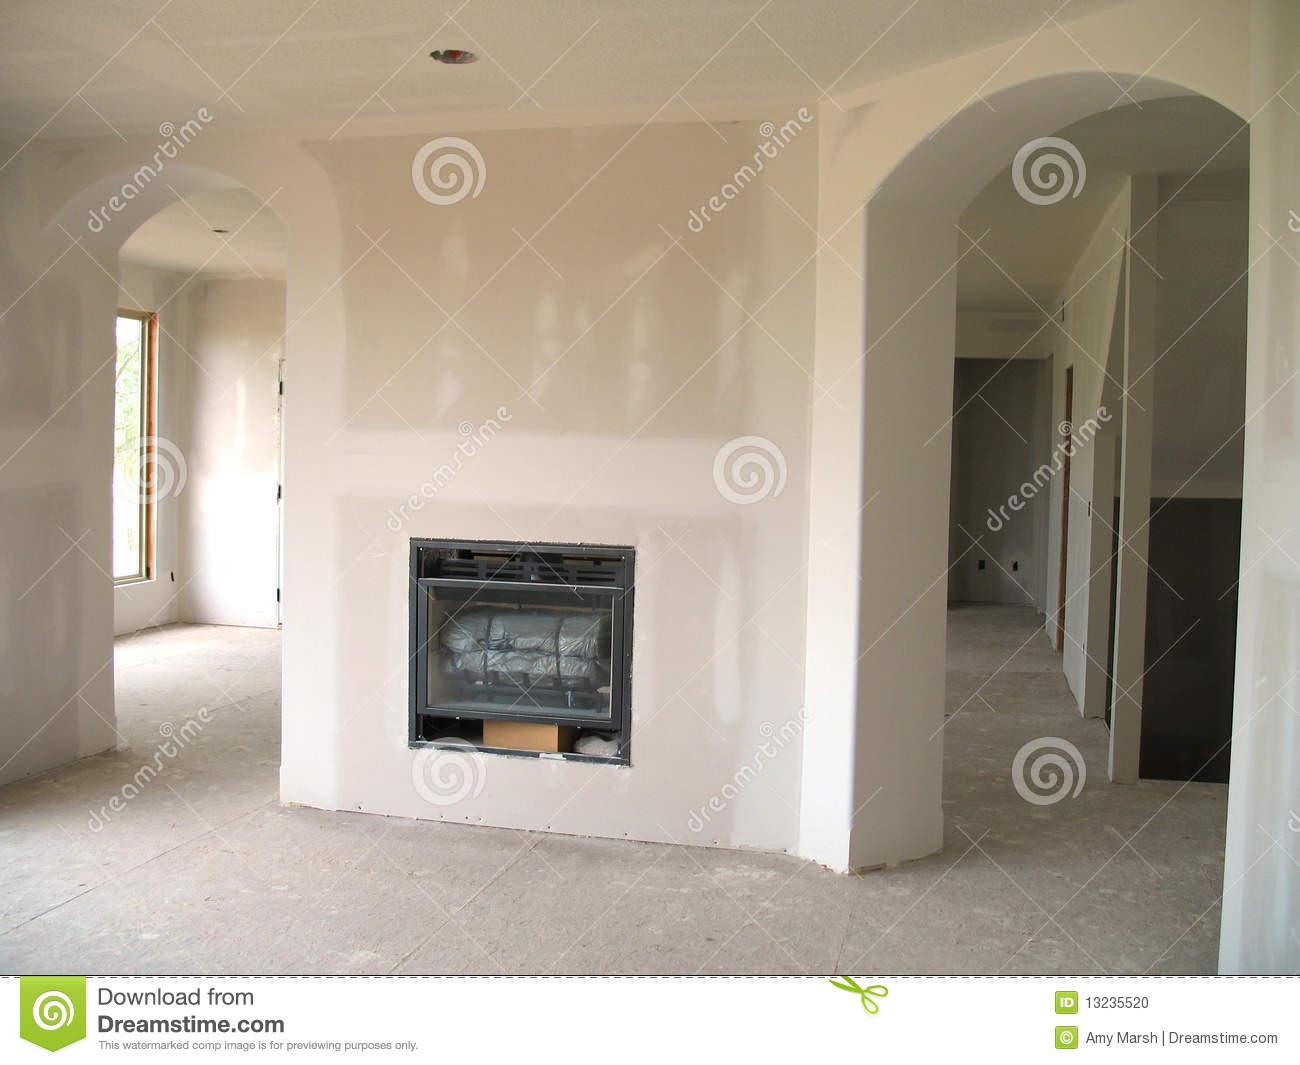 New Drywall With Fireplace Stock Photo - Image: 13235520